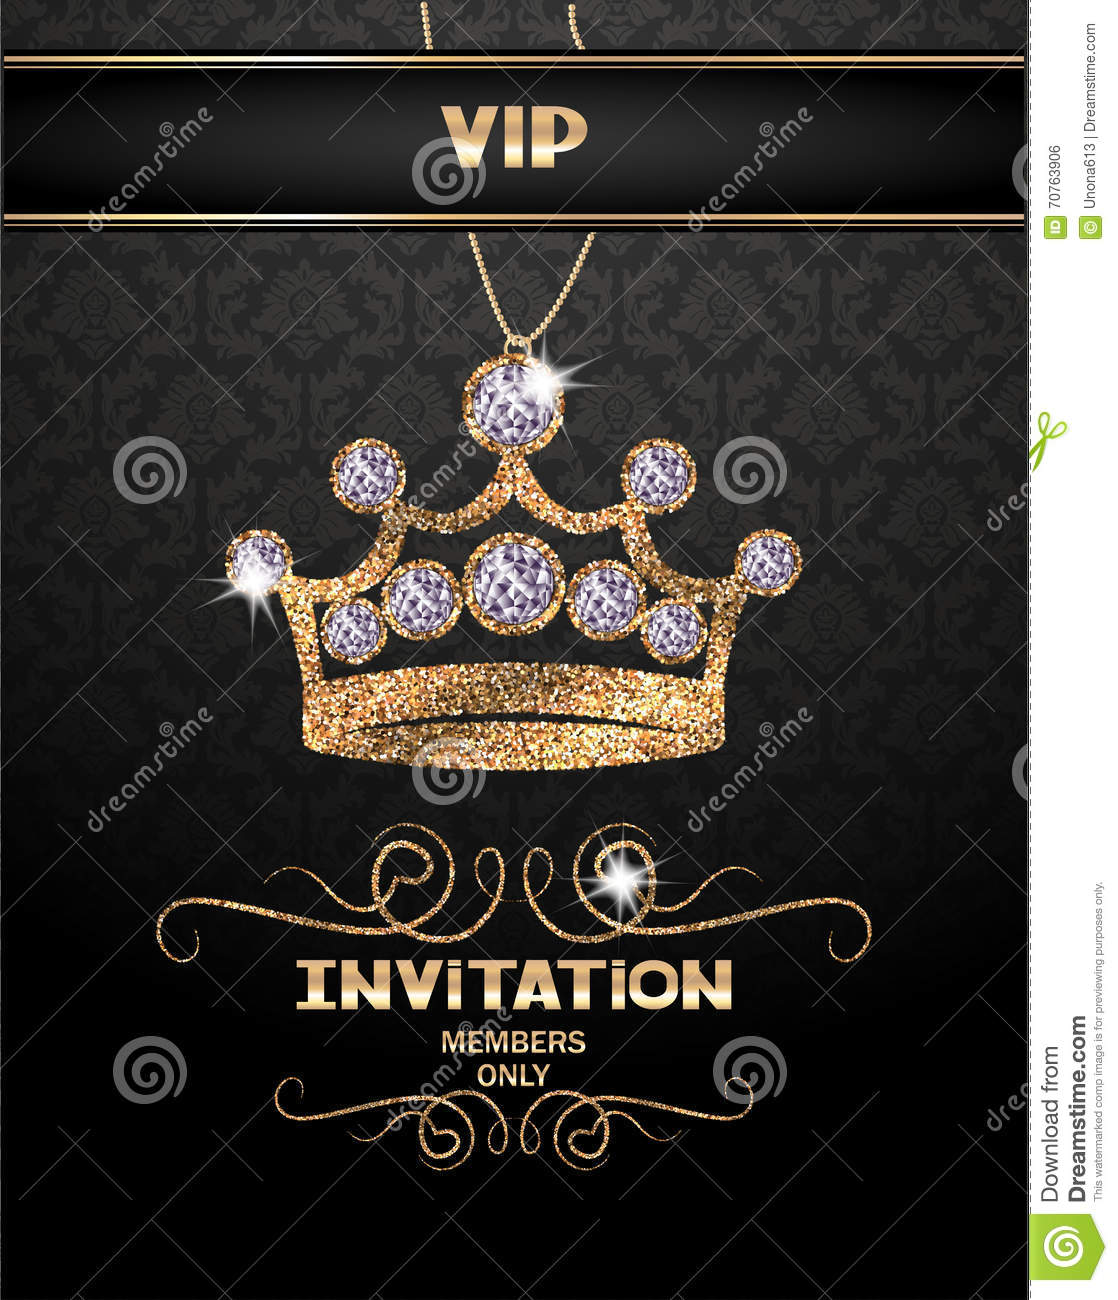 Invitation Vip as awesome invitations ideas